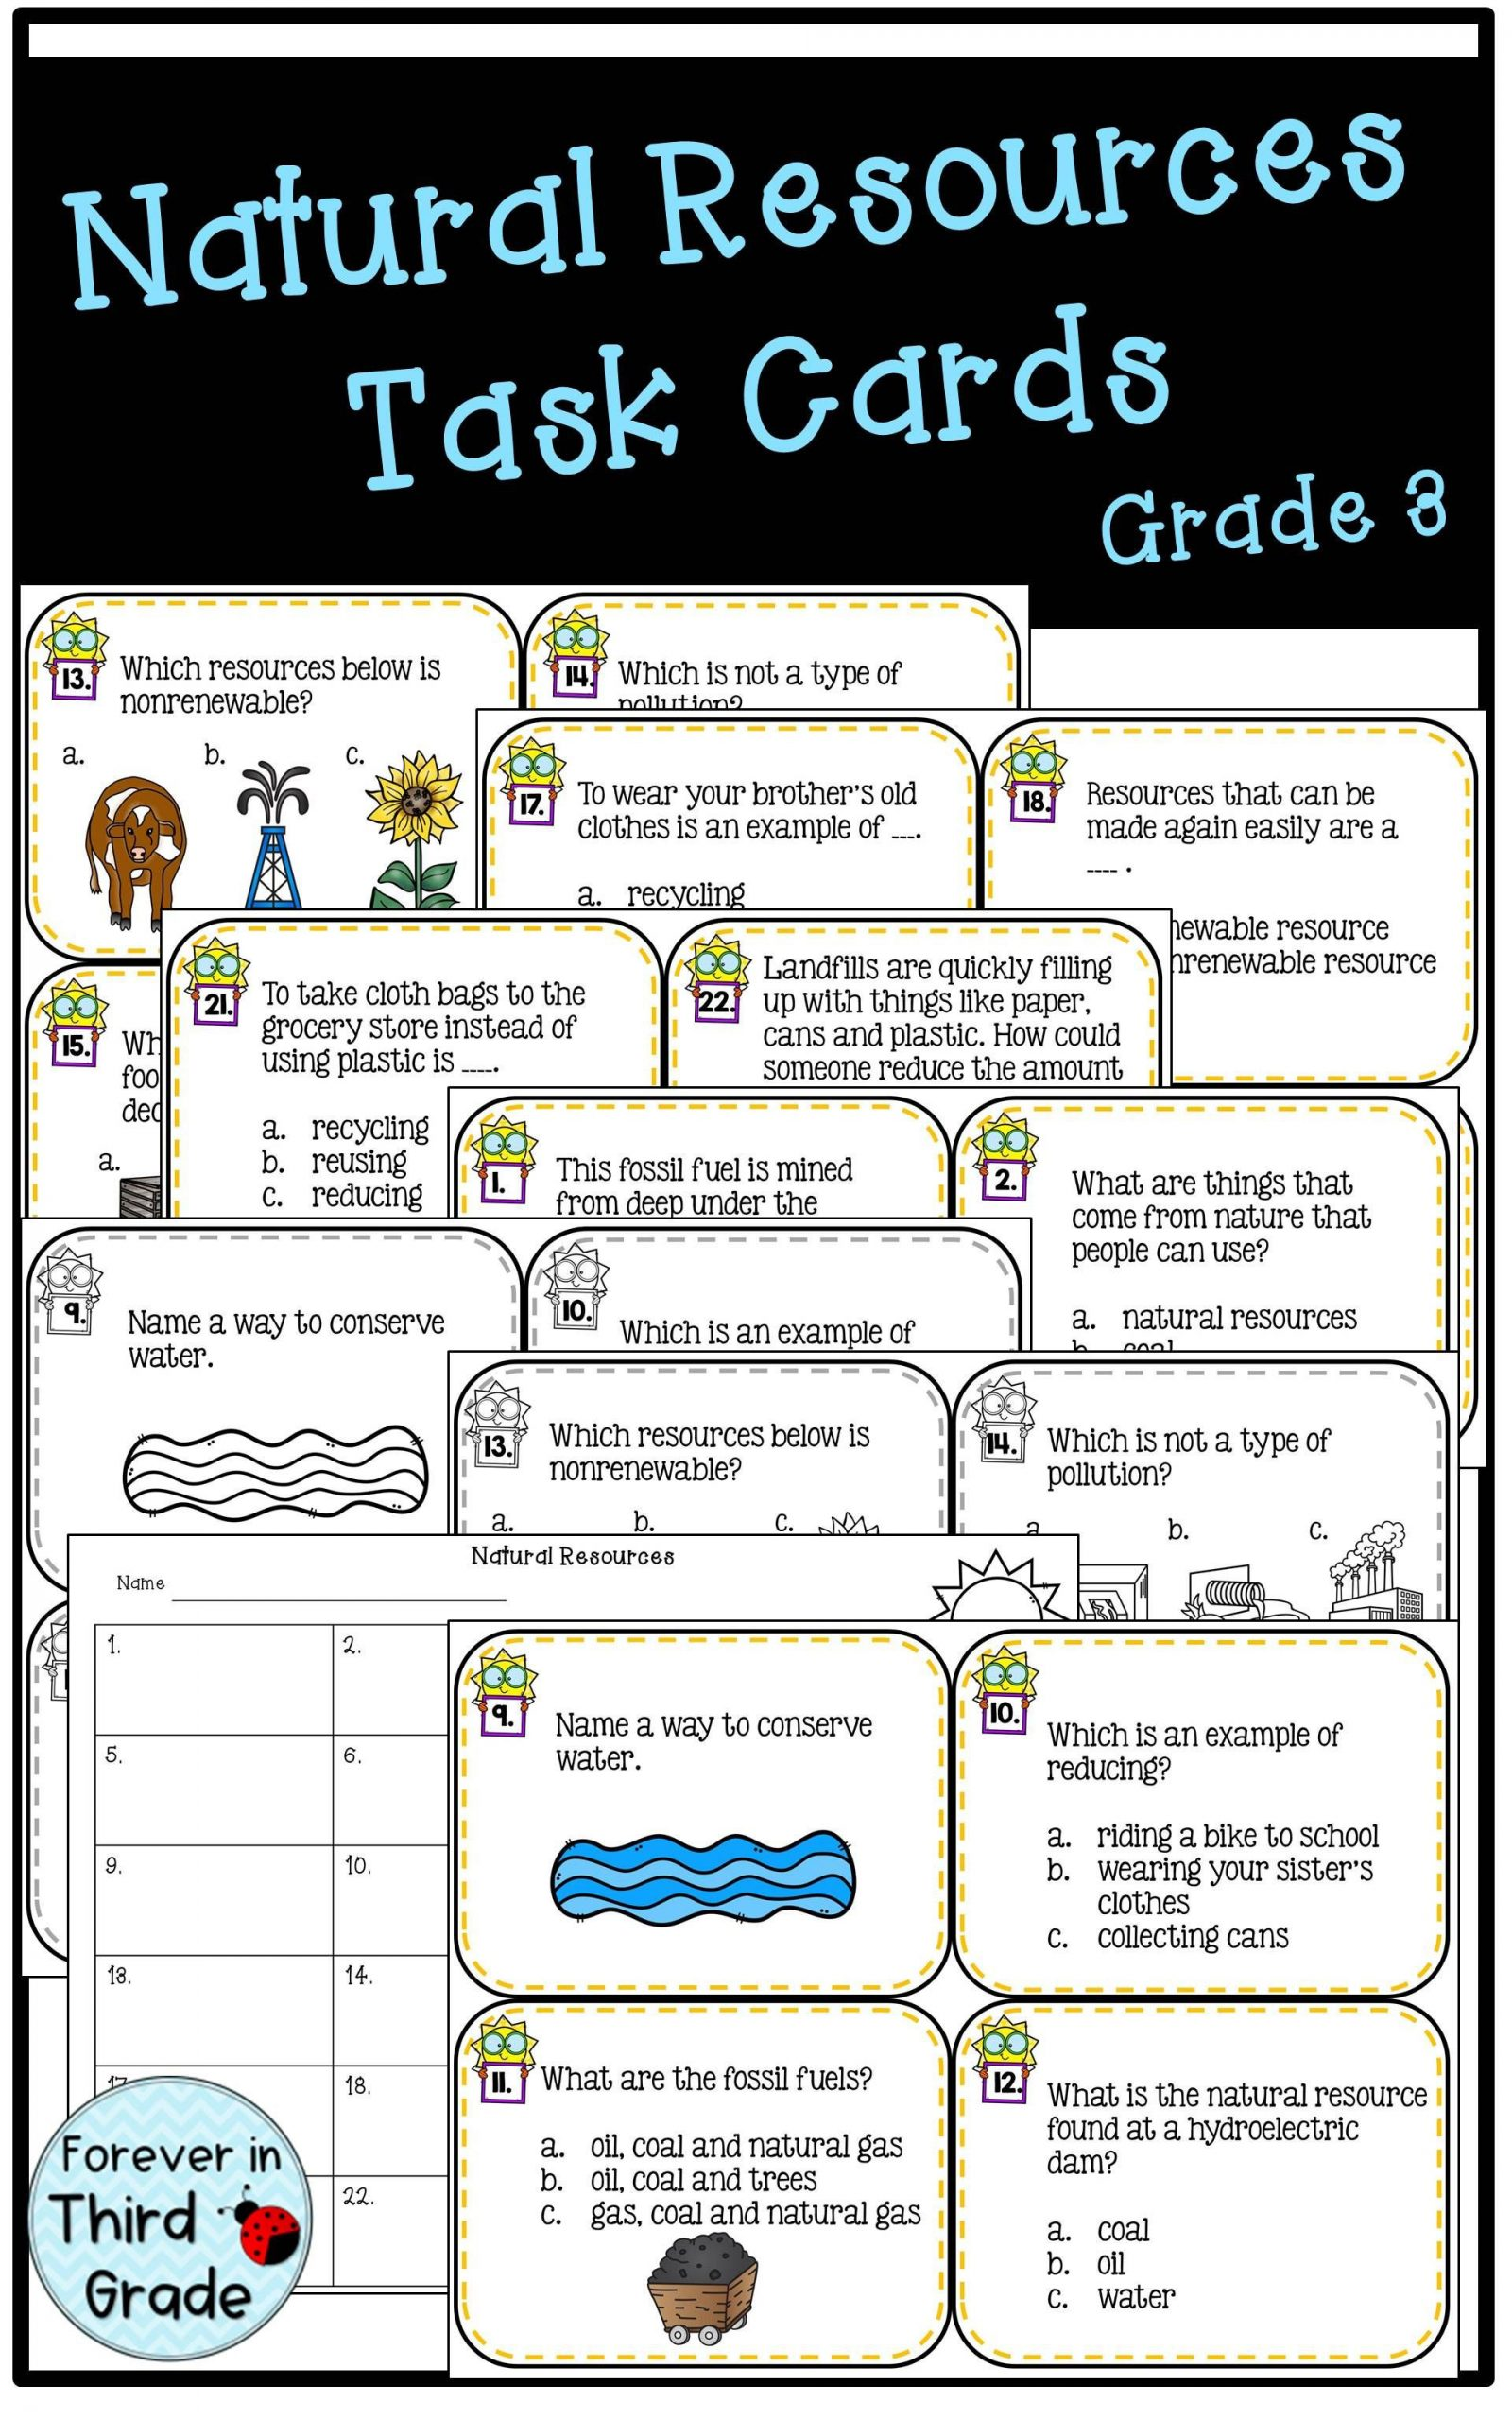 Natural Resources Worksheets 3rd Grade Natural Resources Task Cards